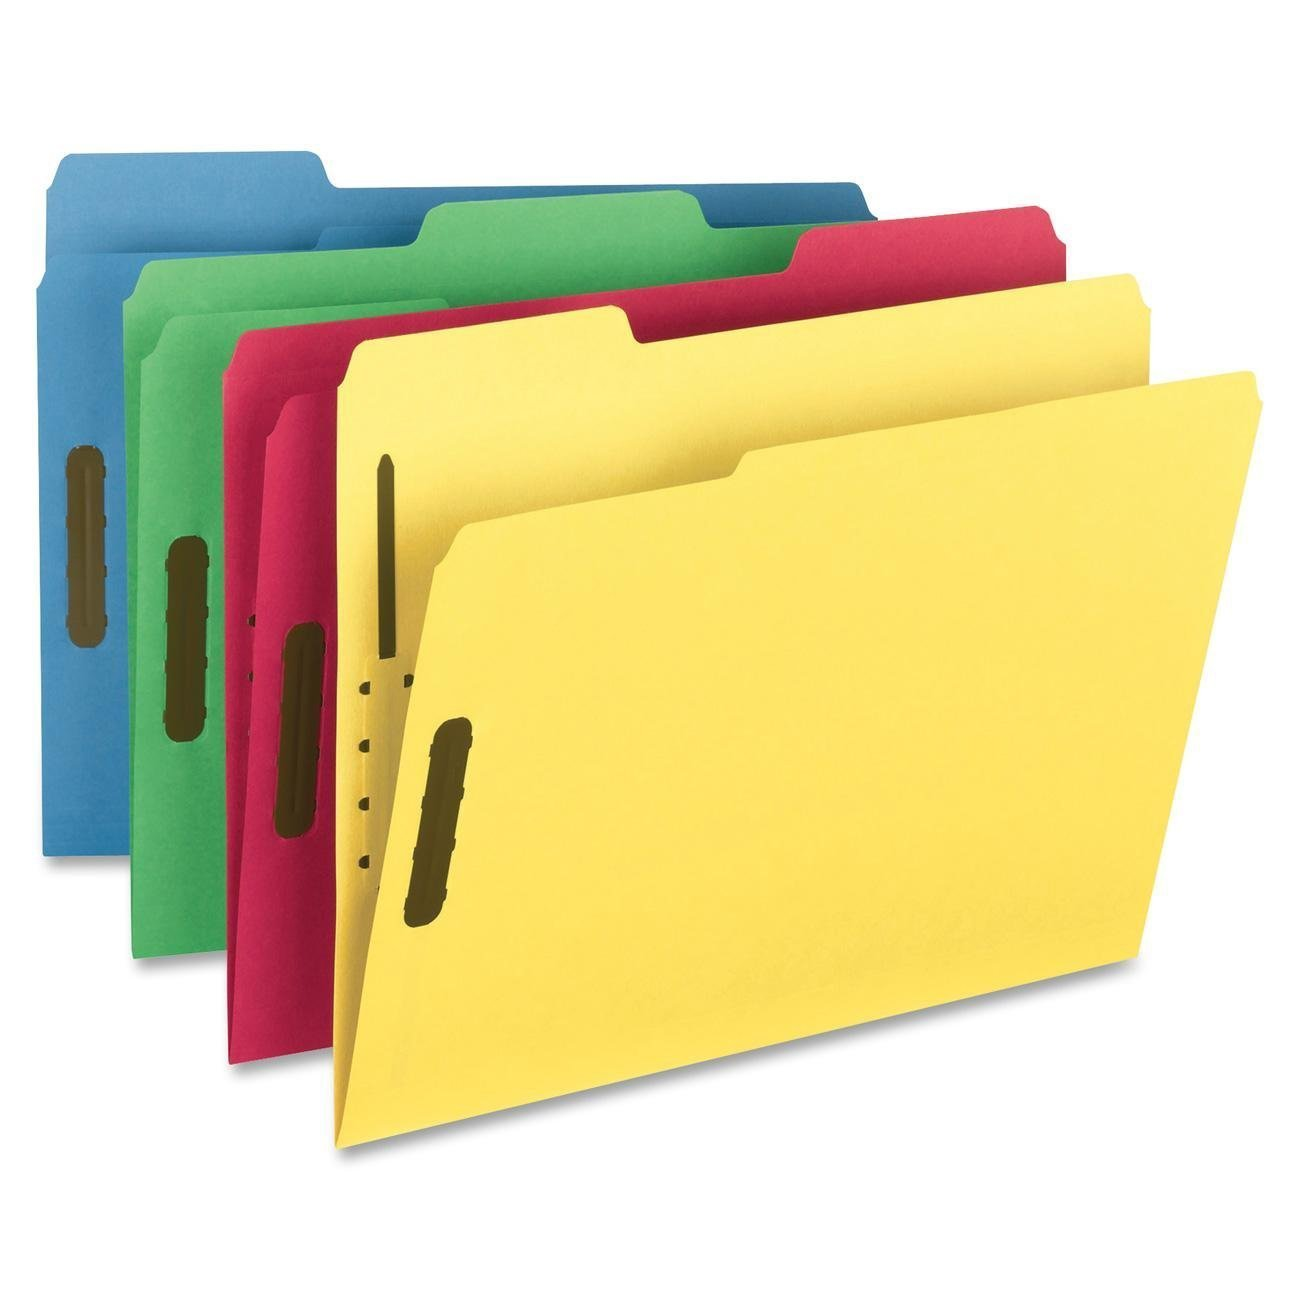 Smead Fastener File Folder, 2 Fasteners, Reinforced 1/3-Cut Tab, Letter Size, Assorted Colors, 50 per Box 2-Pack